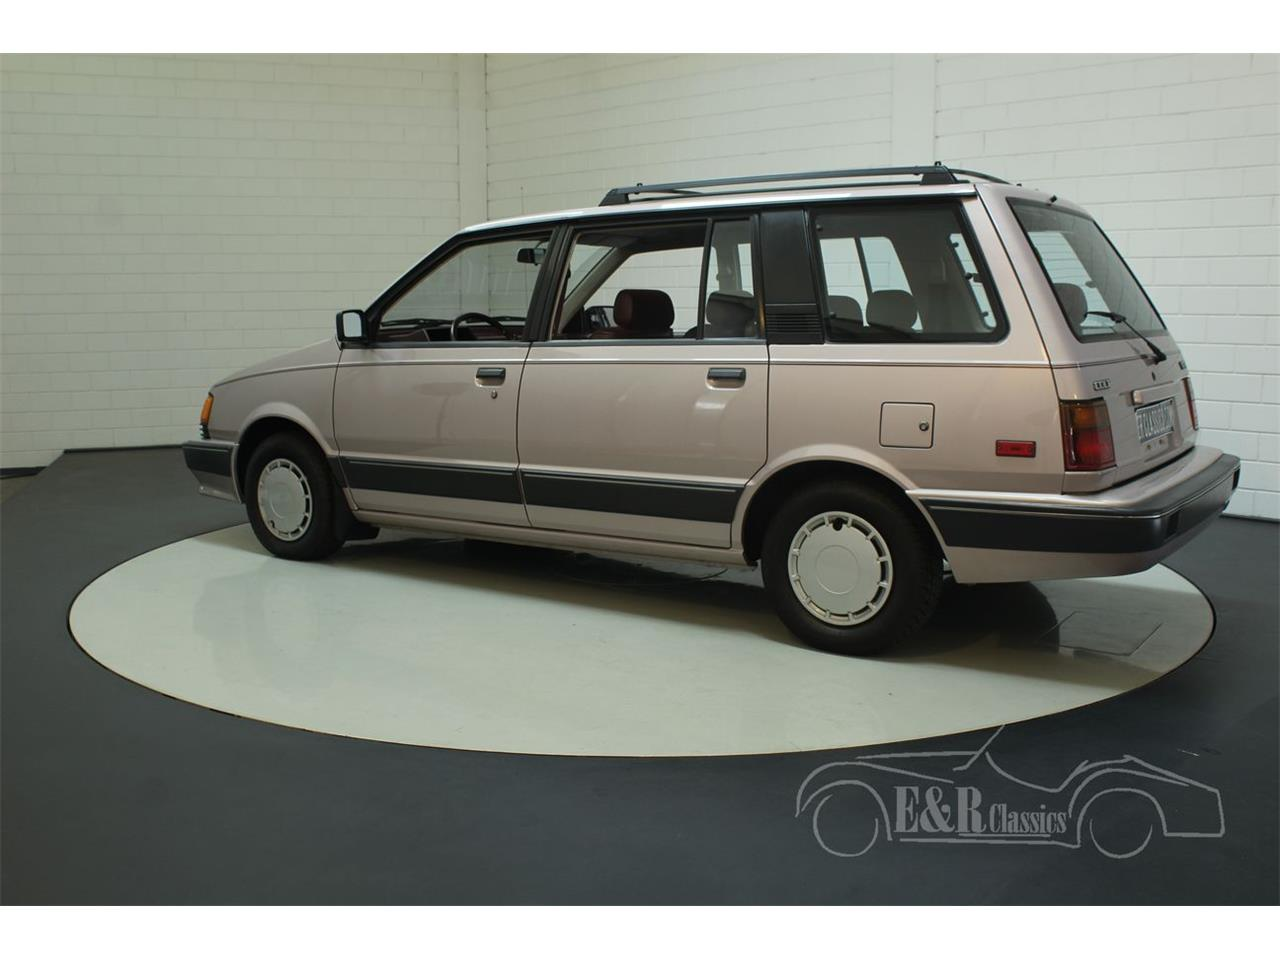 Large Picture of 1987 Dodge Colt located in Waalwijk [nl] Pays-Bas - $16,900.00 Offered by E & R Classics - PVV4